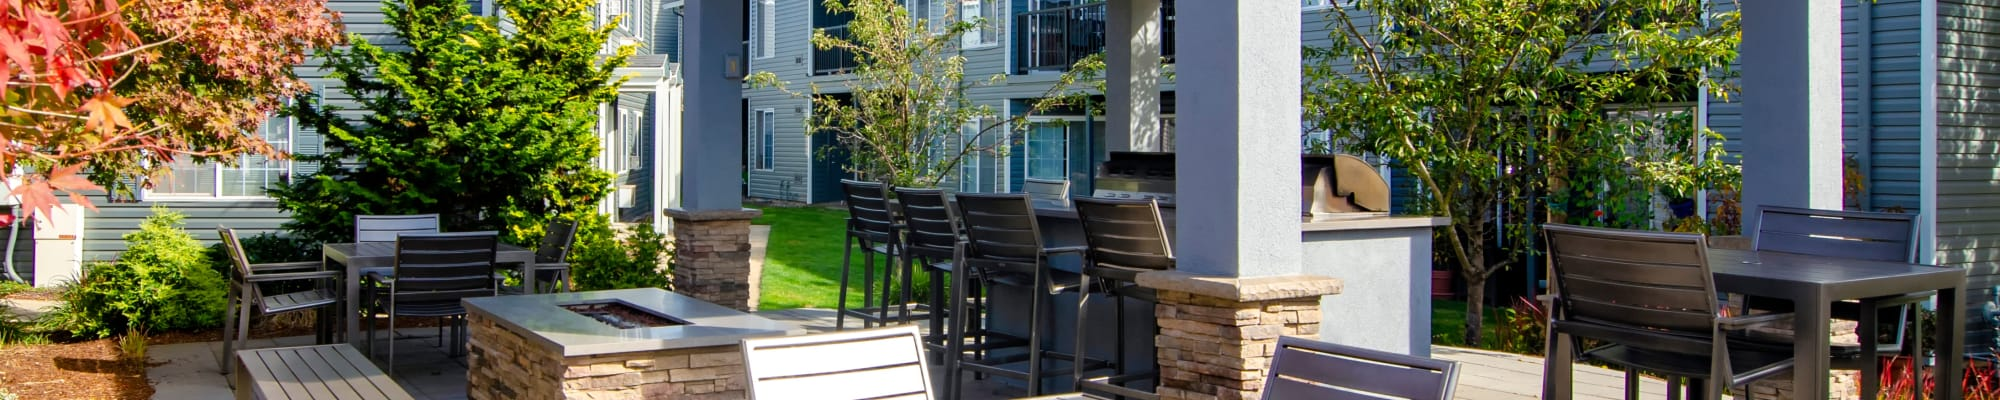 Accessibility statement at The Addison Apartments in Vancouver, Washington